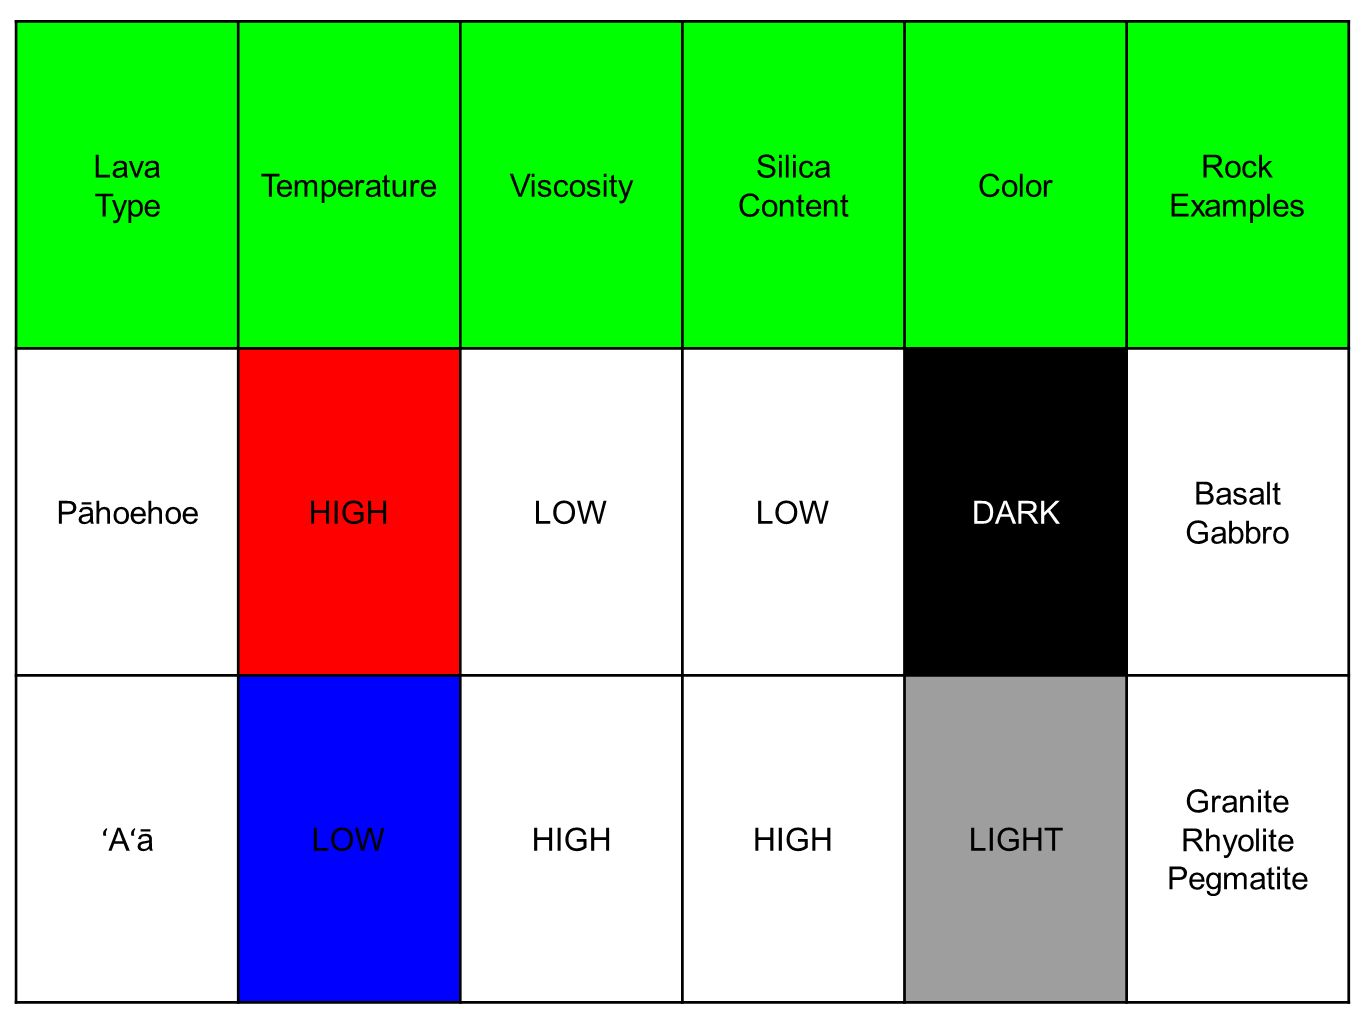 LavaType. Temperature. Viscosity. Silica. Content. Color. Rock. Examples. Pāhoehoe. HIGH. LOW. DARK.